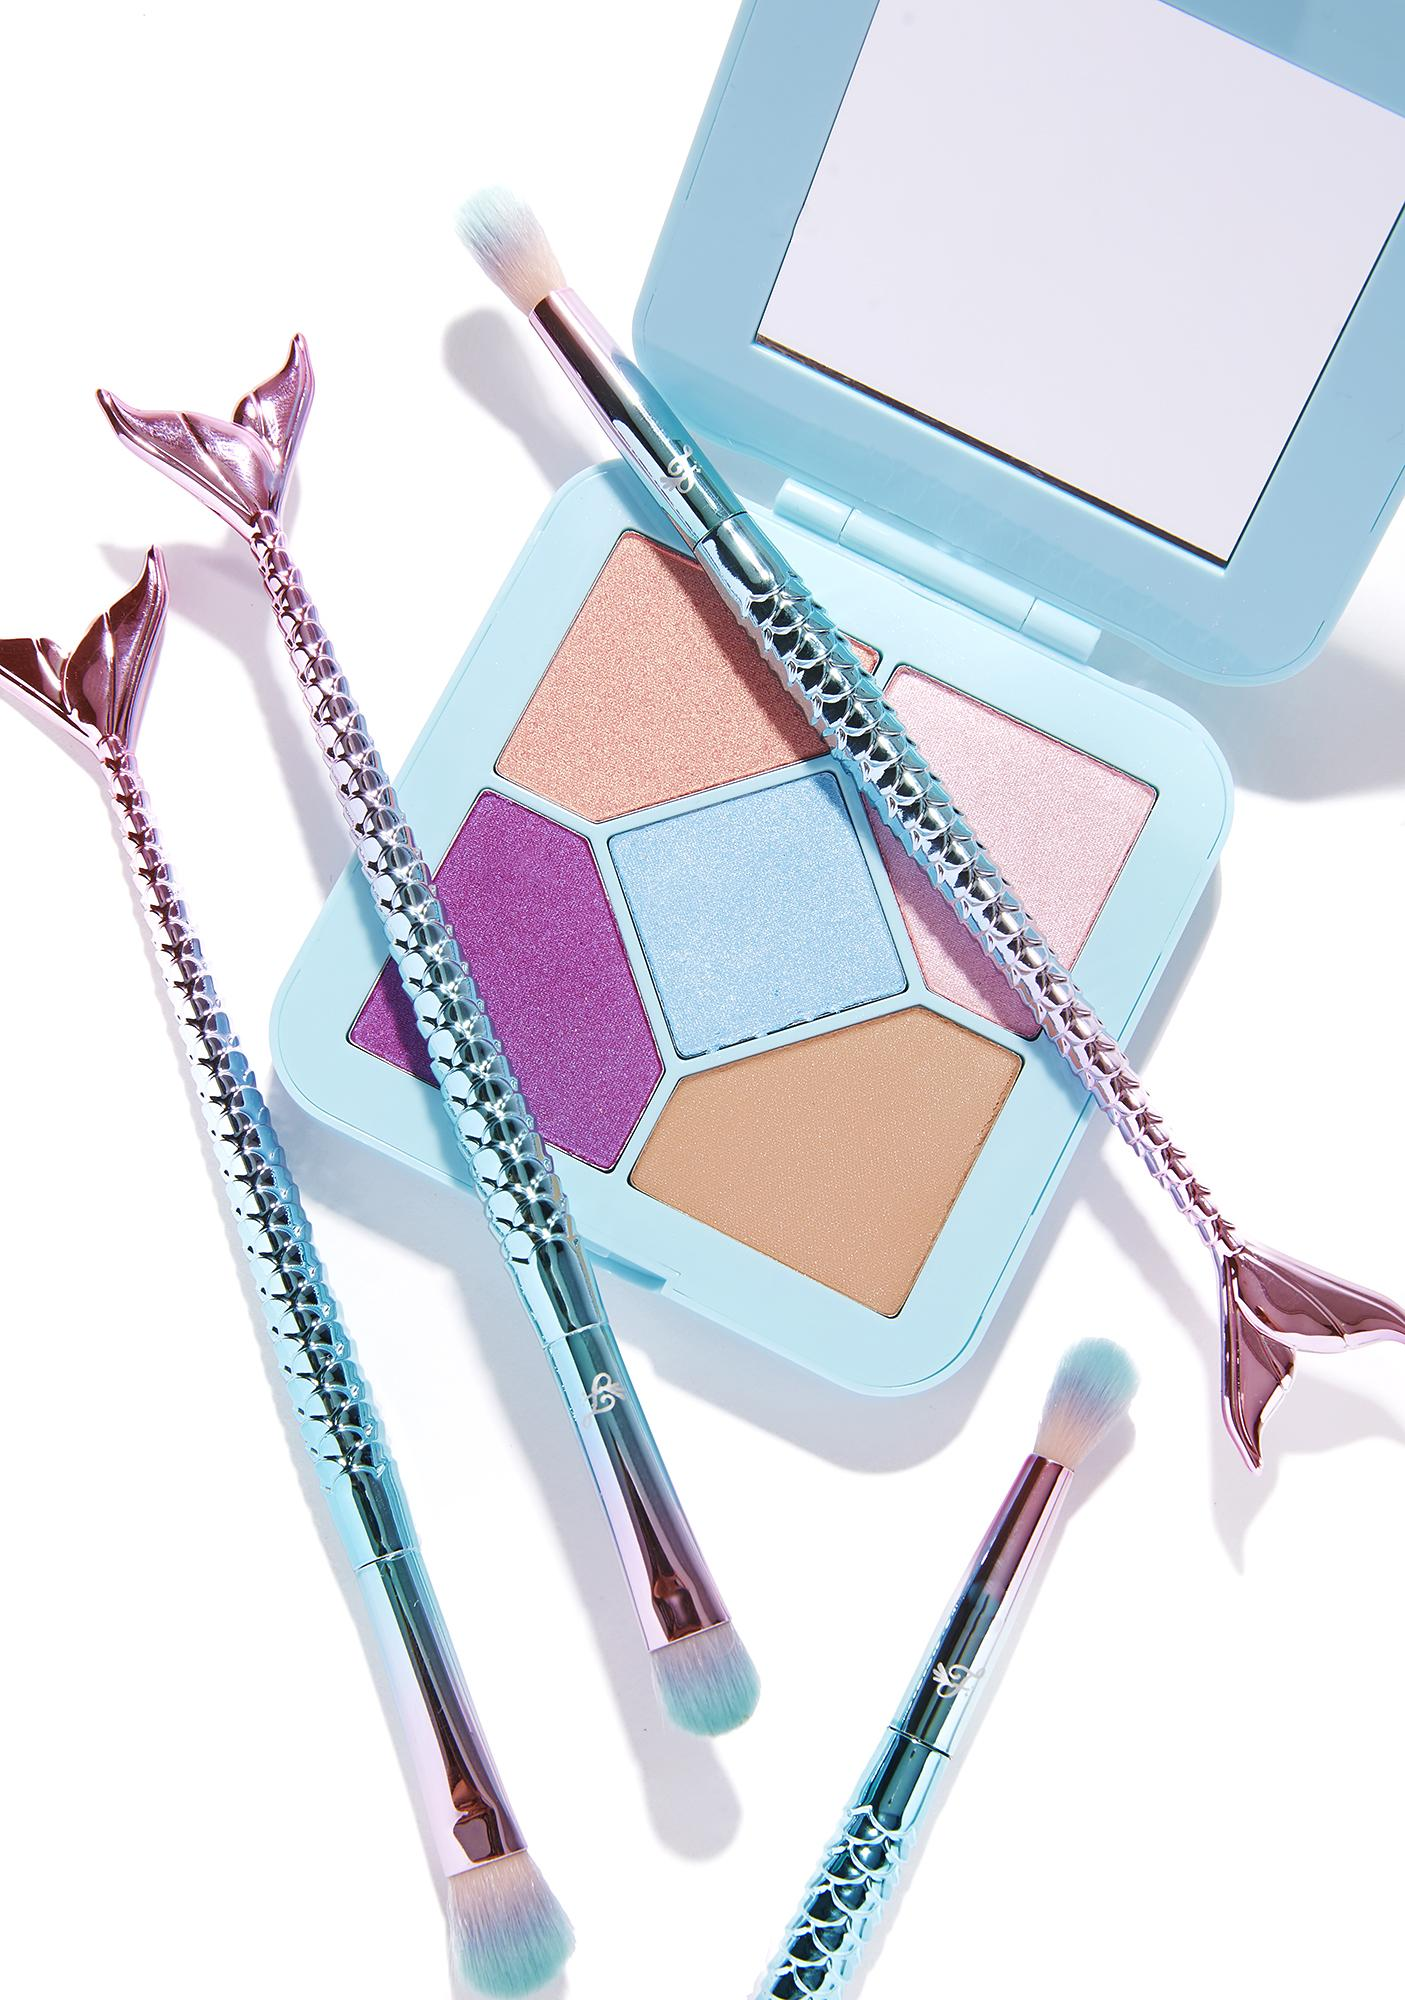 Featherella Beauty Mermaid Jewel Brushes